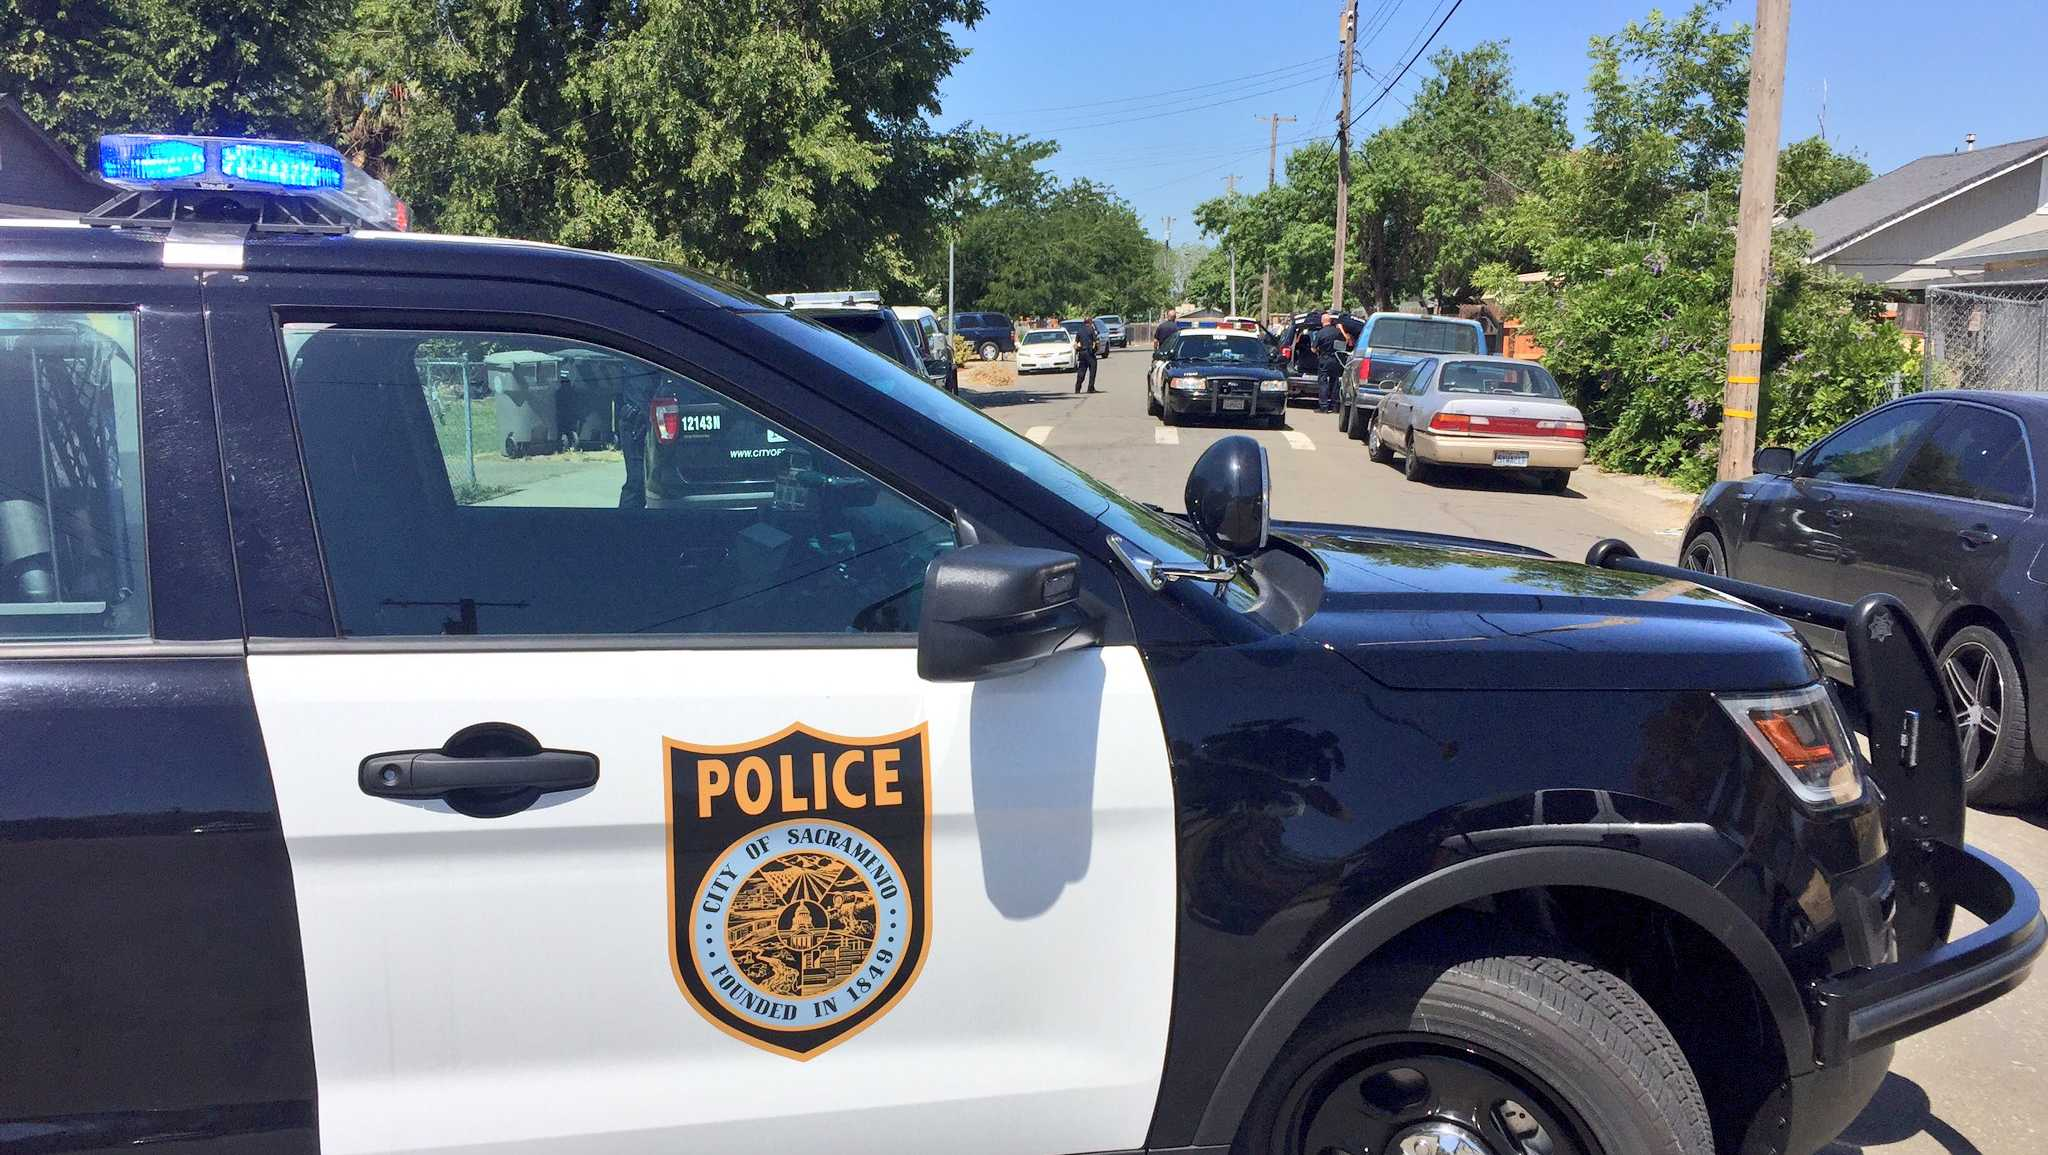 Officers investigate a drive-by shooting Sunday, July 2, 2017, in the Del Paso Heights area, the Sacramento Police Department said.